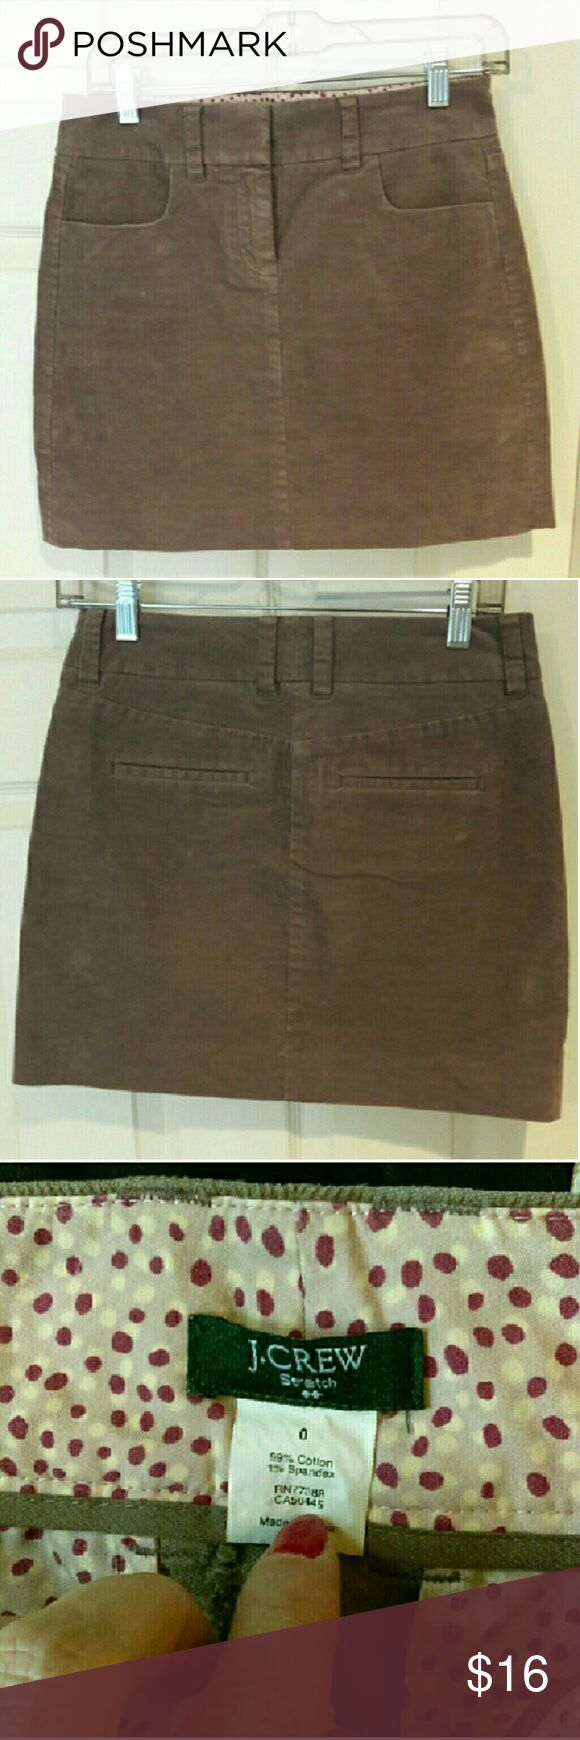 J. Crew - corduroy mini skirt EUC. Very cute mini skirt to wear on a night out with the girls! Awesome corduroy material. Tan in color. From a smoke and pet free home. Very fast shipping.  *No trades  *All offers considered  *I take offers on bundles J. Crew Factory Skirts Mini